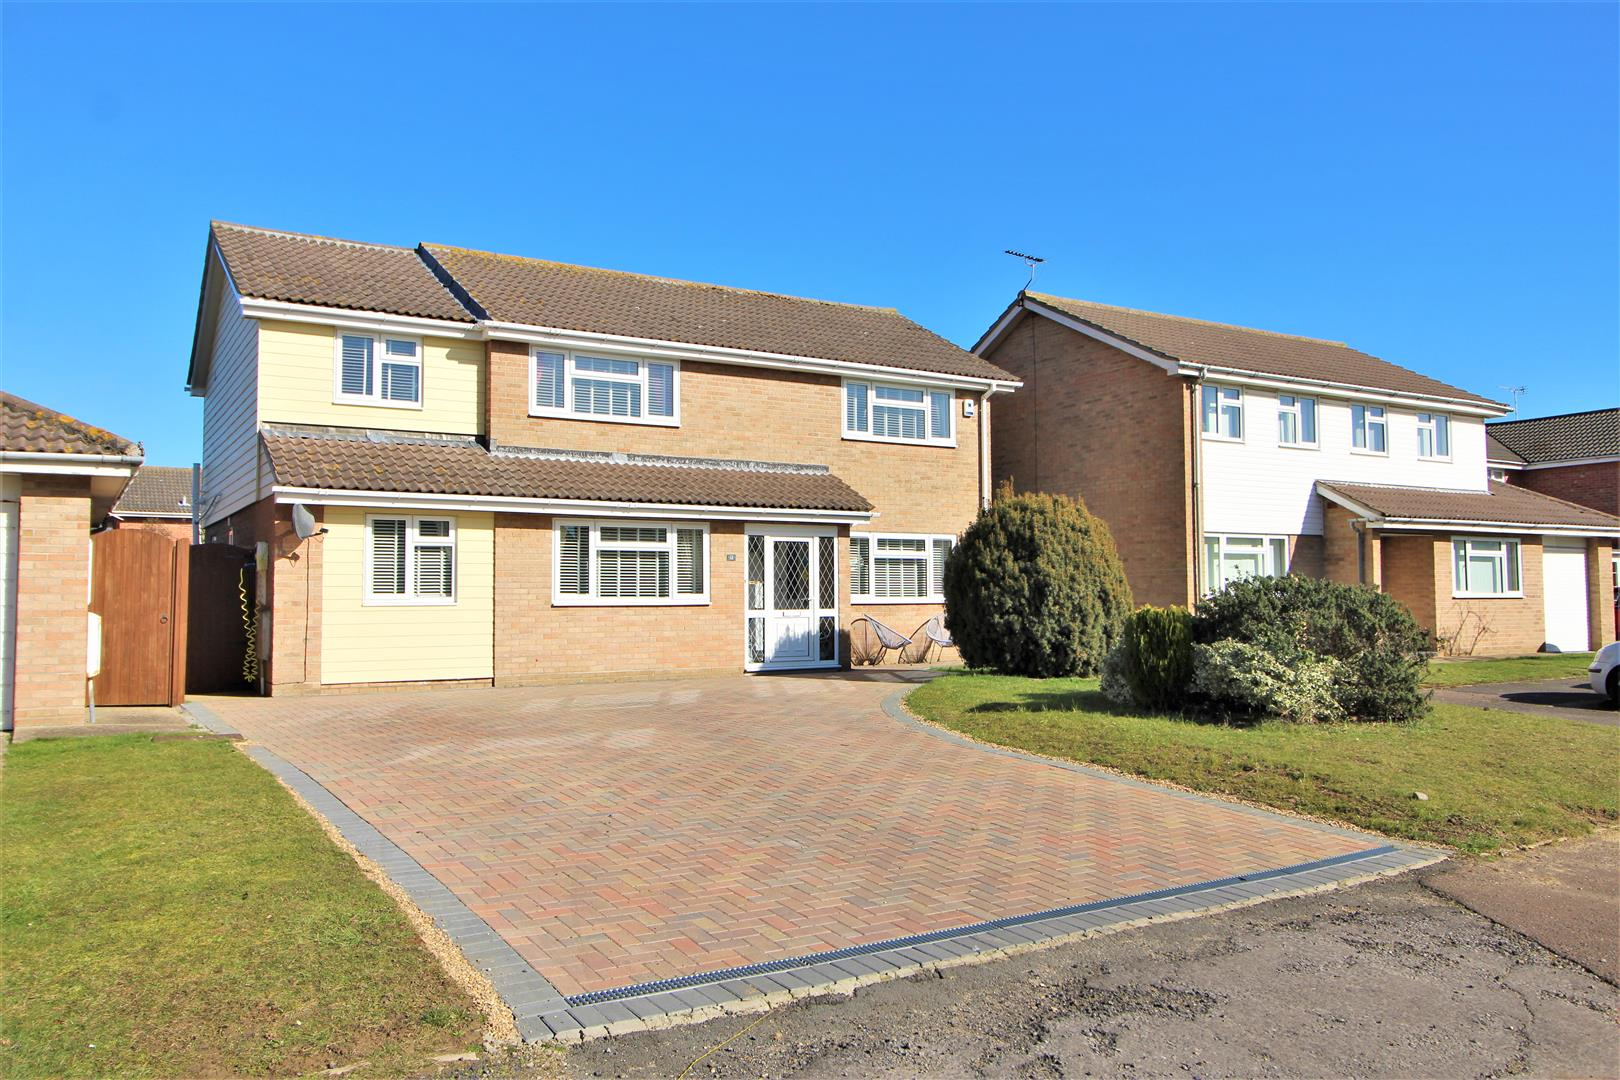 Hunt Way, Frietuna, Essex, CO13 0RQ